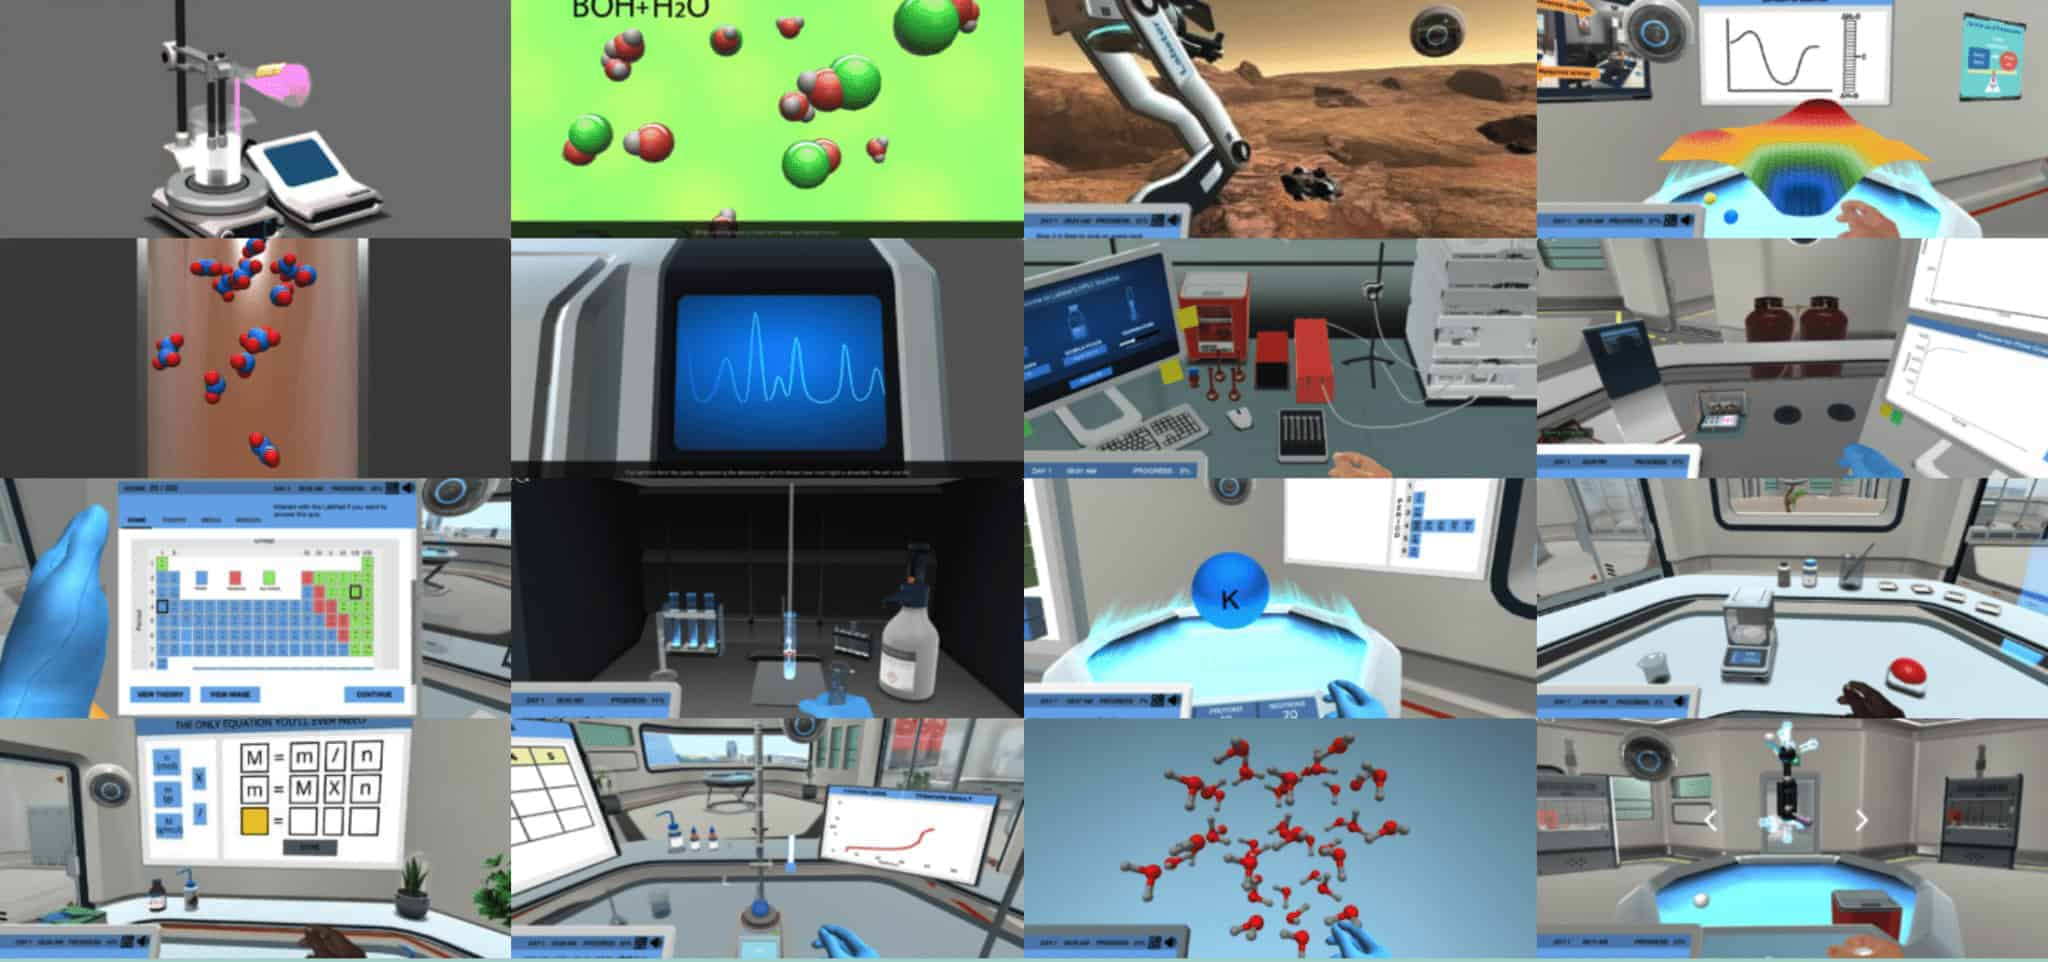 Labster, a Boston-based virtual laboratory simulations company, has raised $9 million in new funding led by GGV Capital